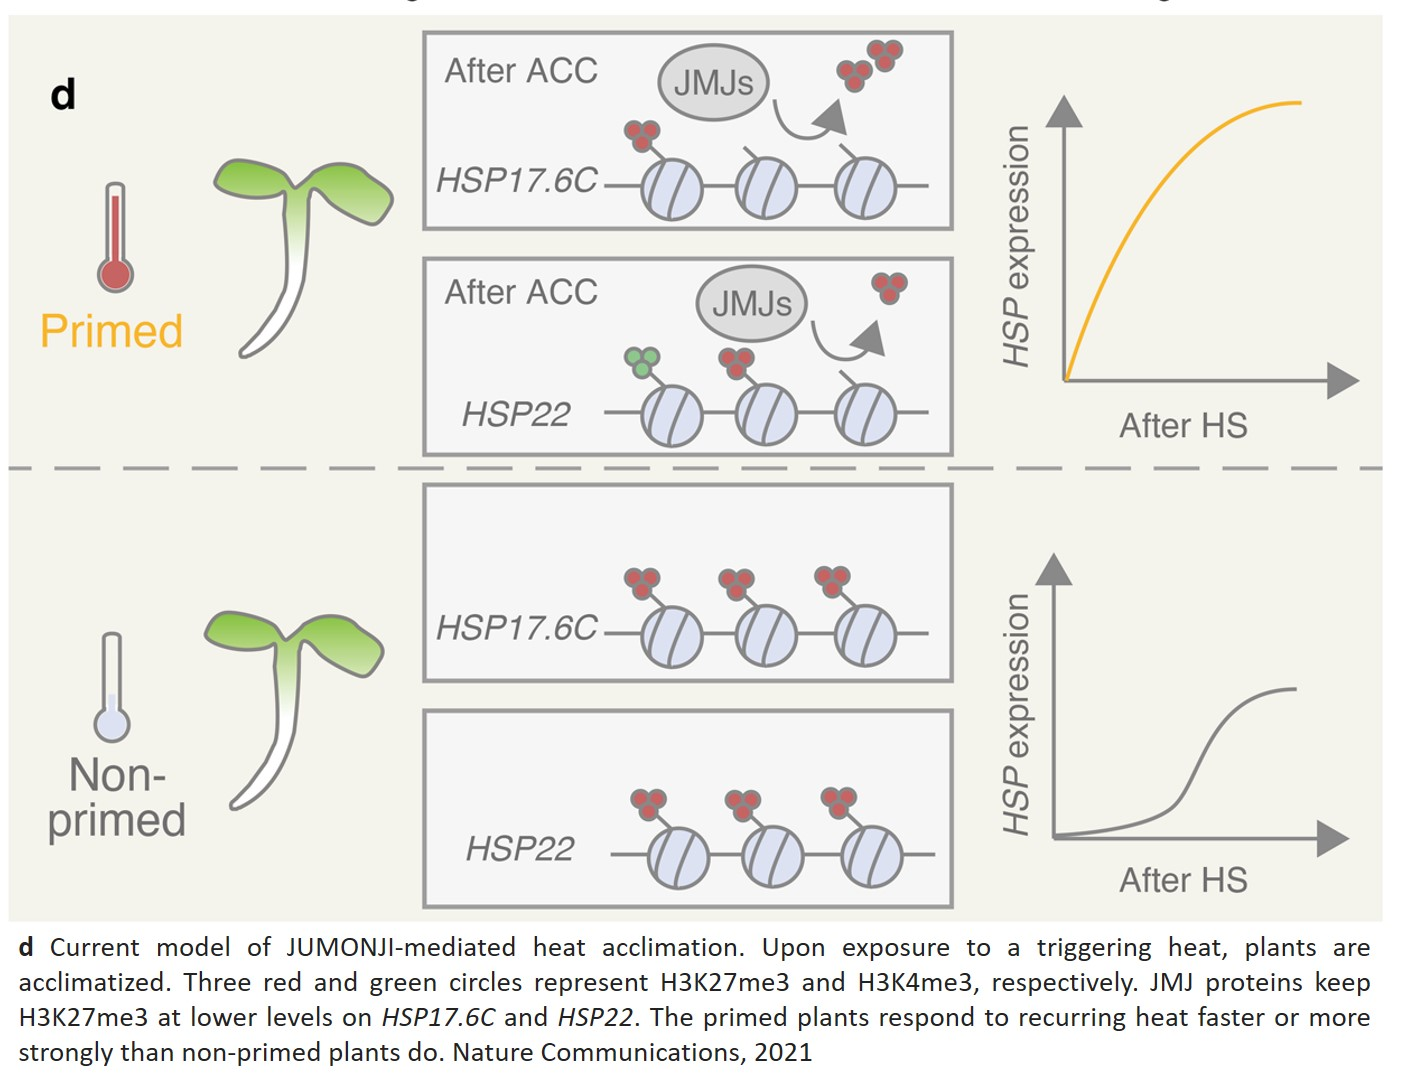 Memory mechanism allows plants to adapt to heat stress